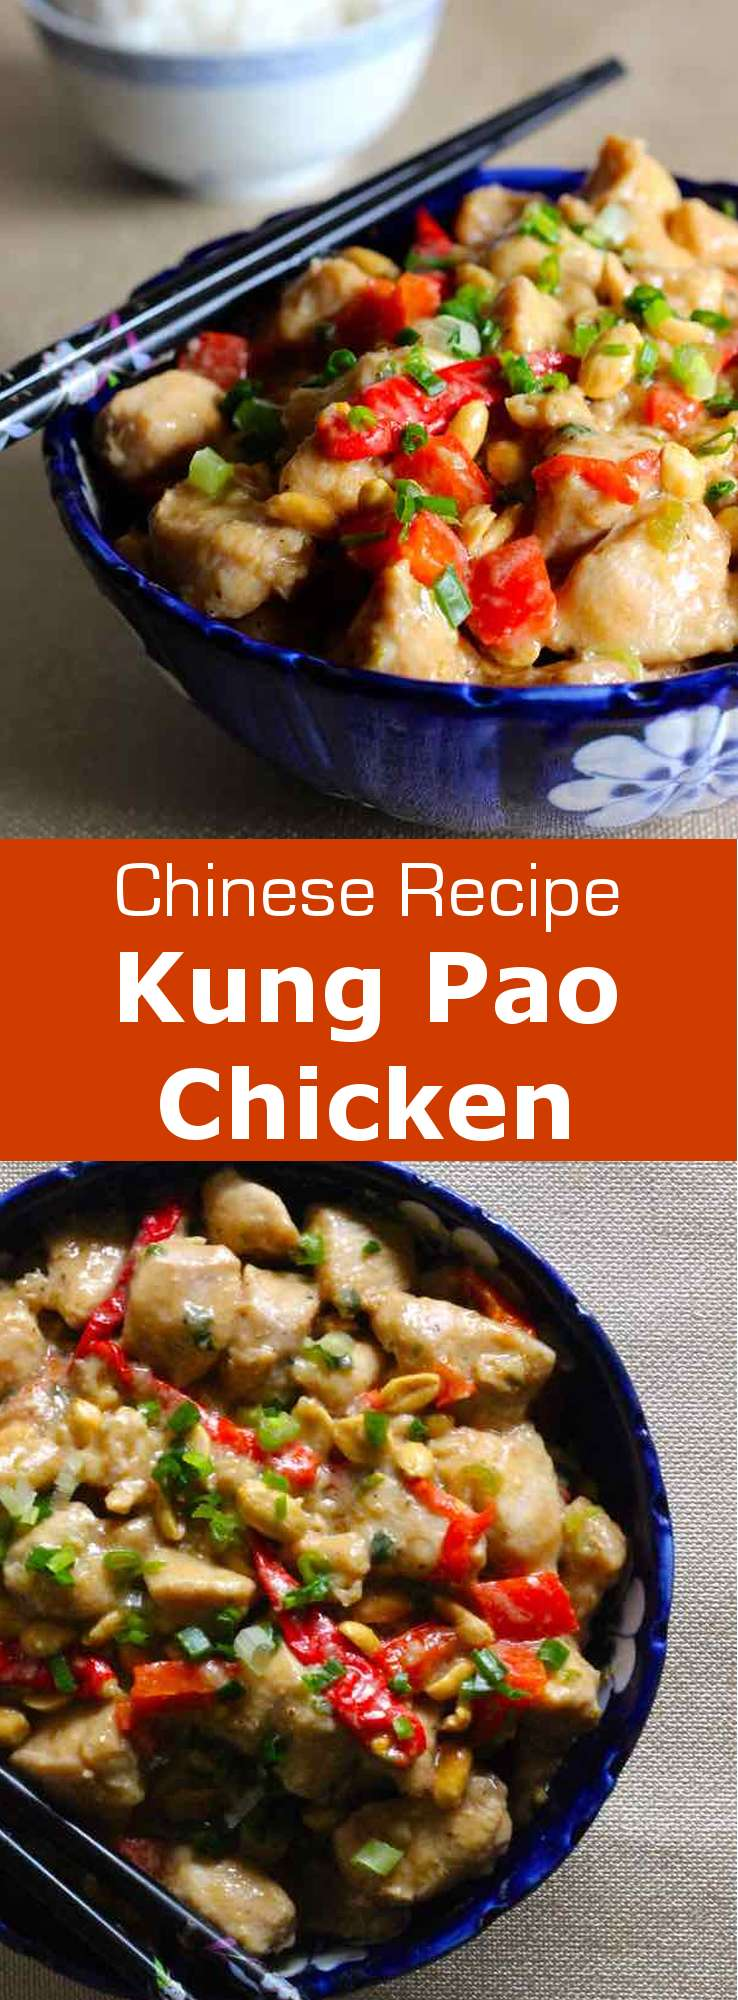 Kung Pao chicken is a deliciously spicy stir-fry dish that is prepared with chicken, peanuts, and chili peppers, to which vegetables are sometimes added. #ChineseRecipe #AsianRecipe #ChineseCuisine #AsianCuisine #WorldCuisine #196flavors